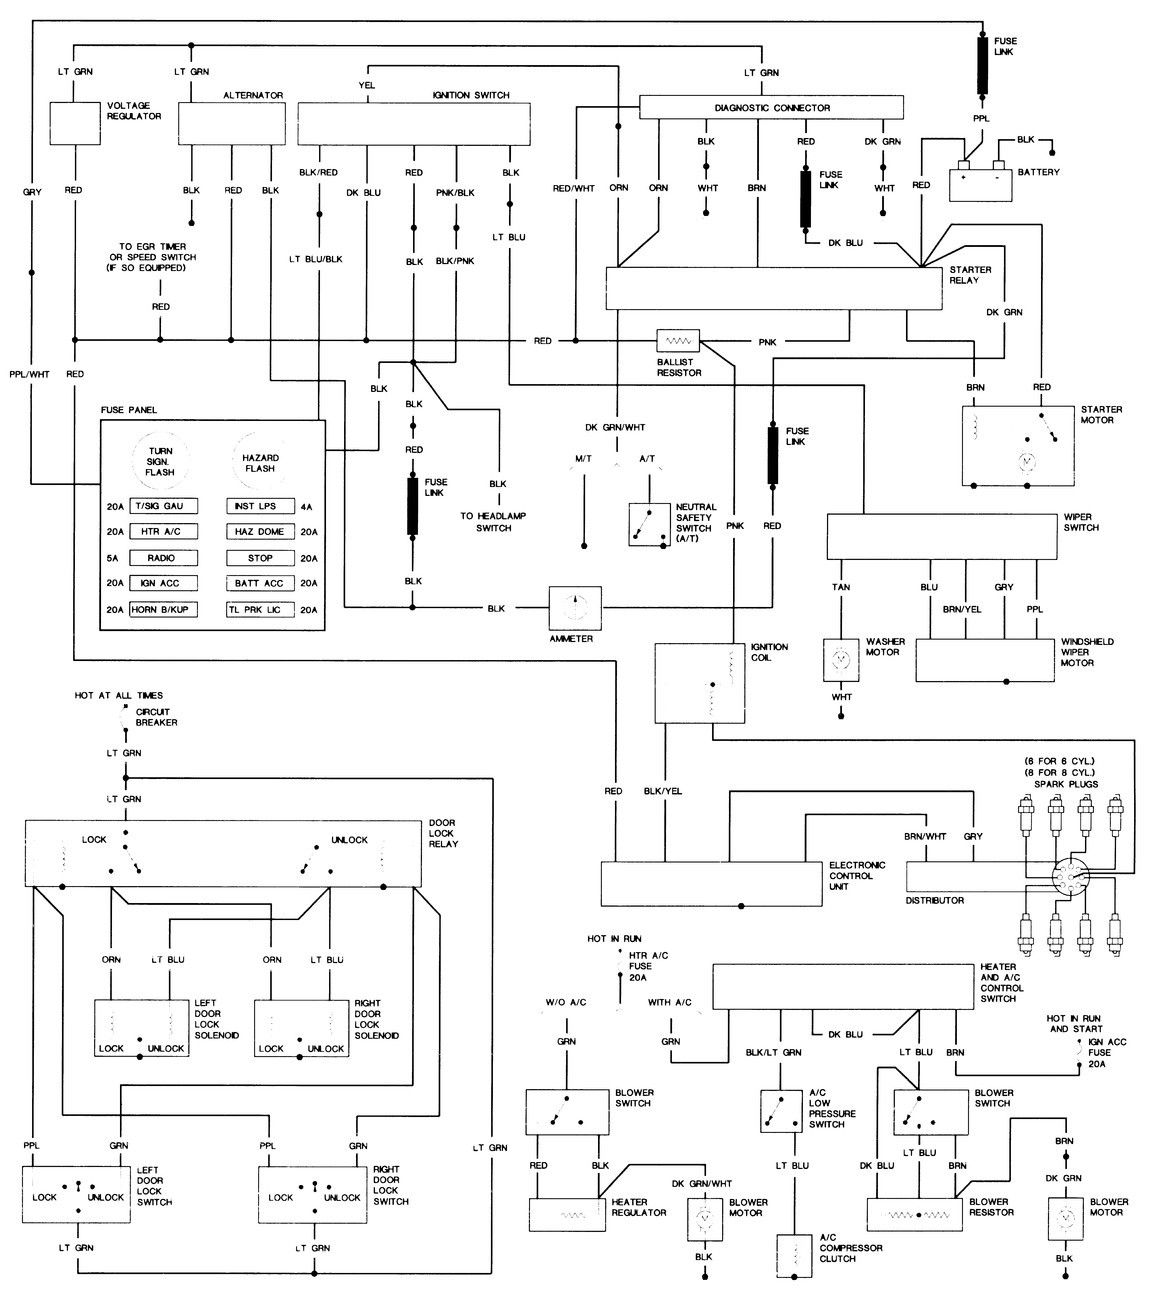 09 dodge ram wiring diagram  u2022 wiring diagram for free